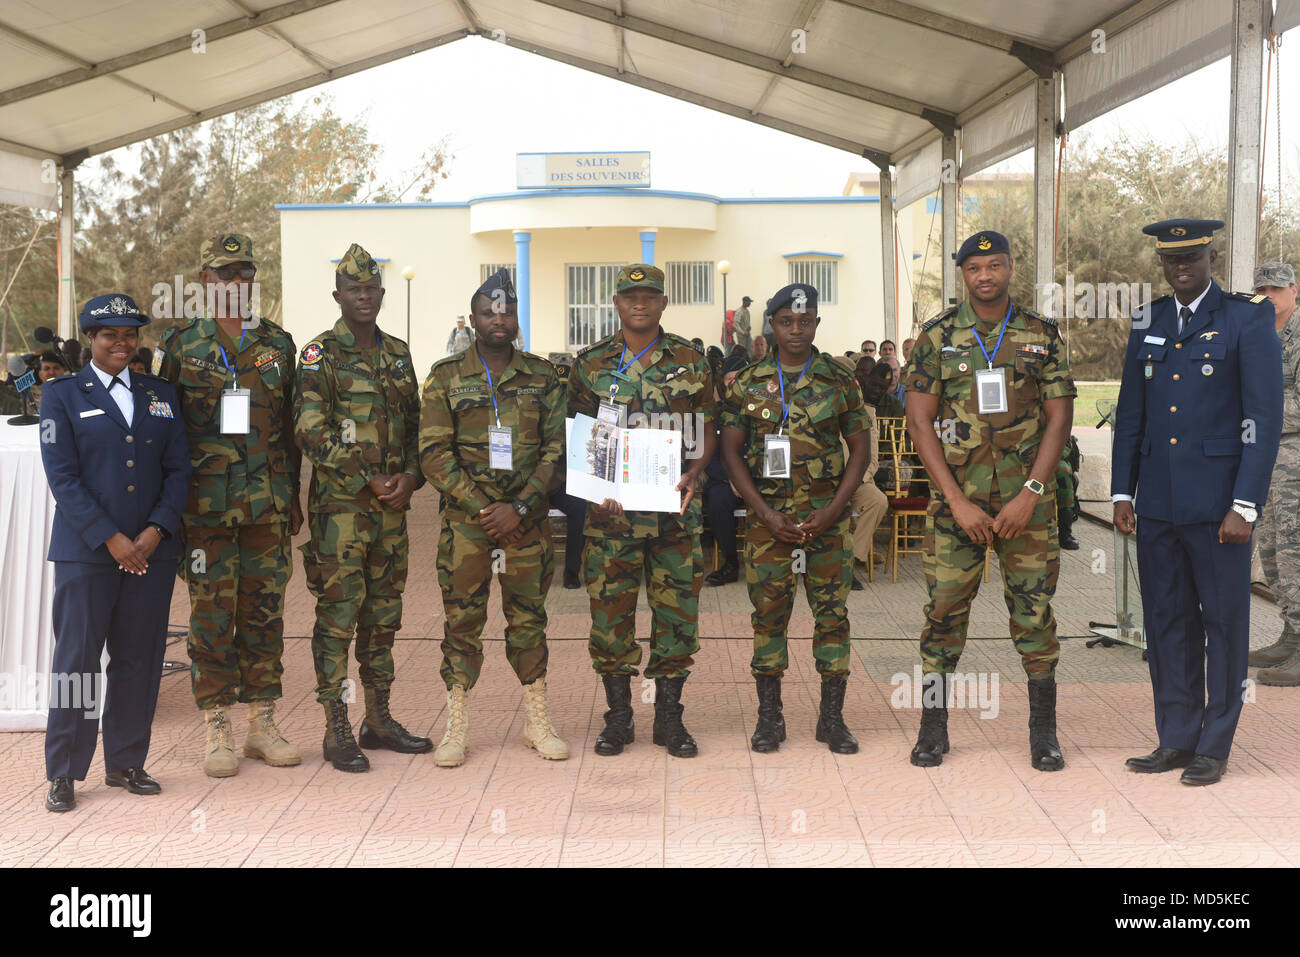 African Partnership Flight participants from Ghana pose for a photo after the closing ceremony for APF at Captain Andalla Cissé Air Base, Senegal, March 23, 2018. The event, co-hosted by the U.S. and Senegal, brought together ten nations to discuss tactics, techniques and procedures in the fields of aeromedical evacuation, casualty evacuation and air and ground safety. (U.S. Air Force photo by Airman 1st Class Eli Chevalier) - Stock Image